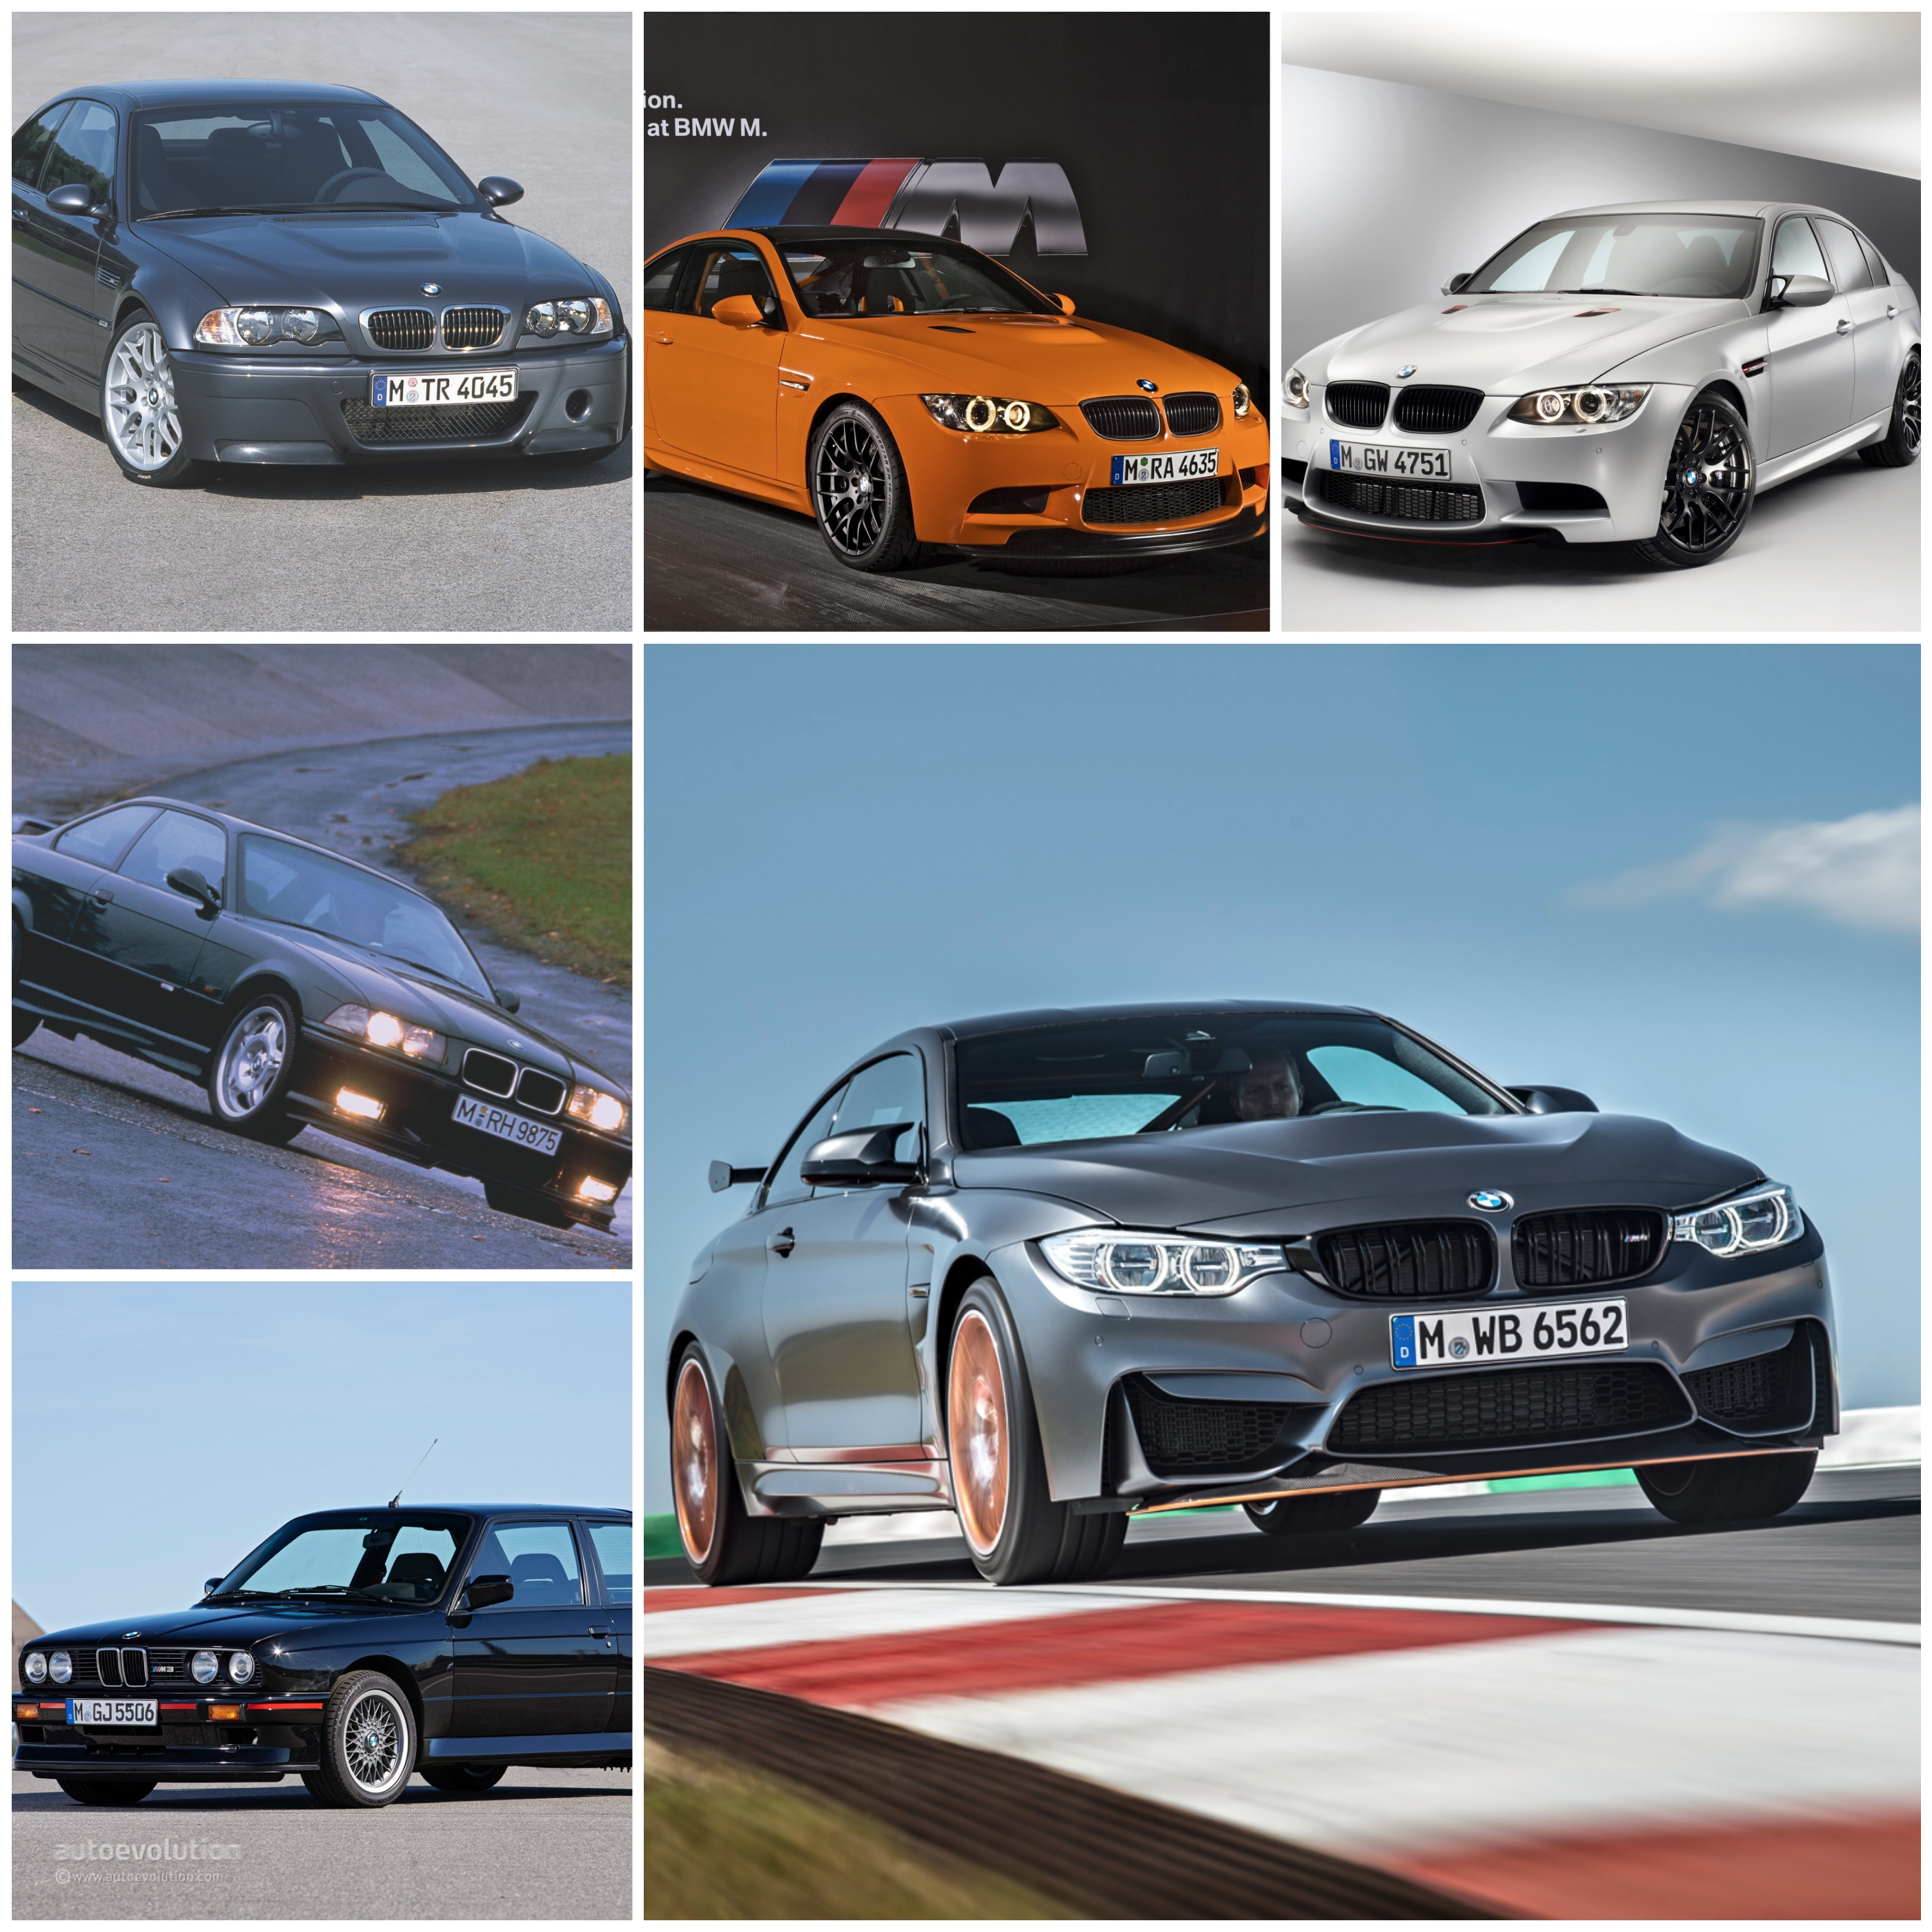 Bmw M3 Gts: The History Of BMW M3 Special Editions Or The Long Road To